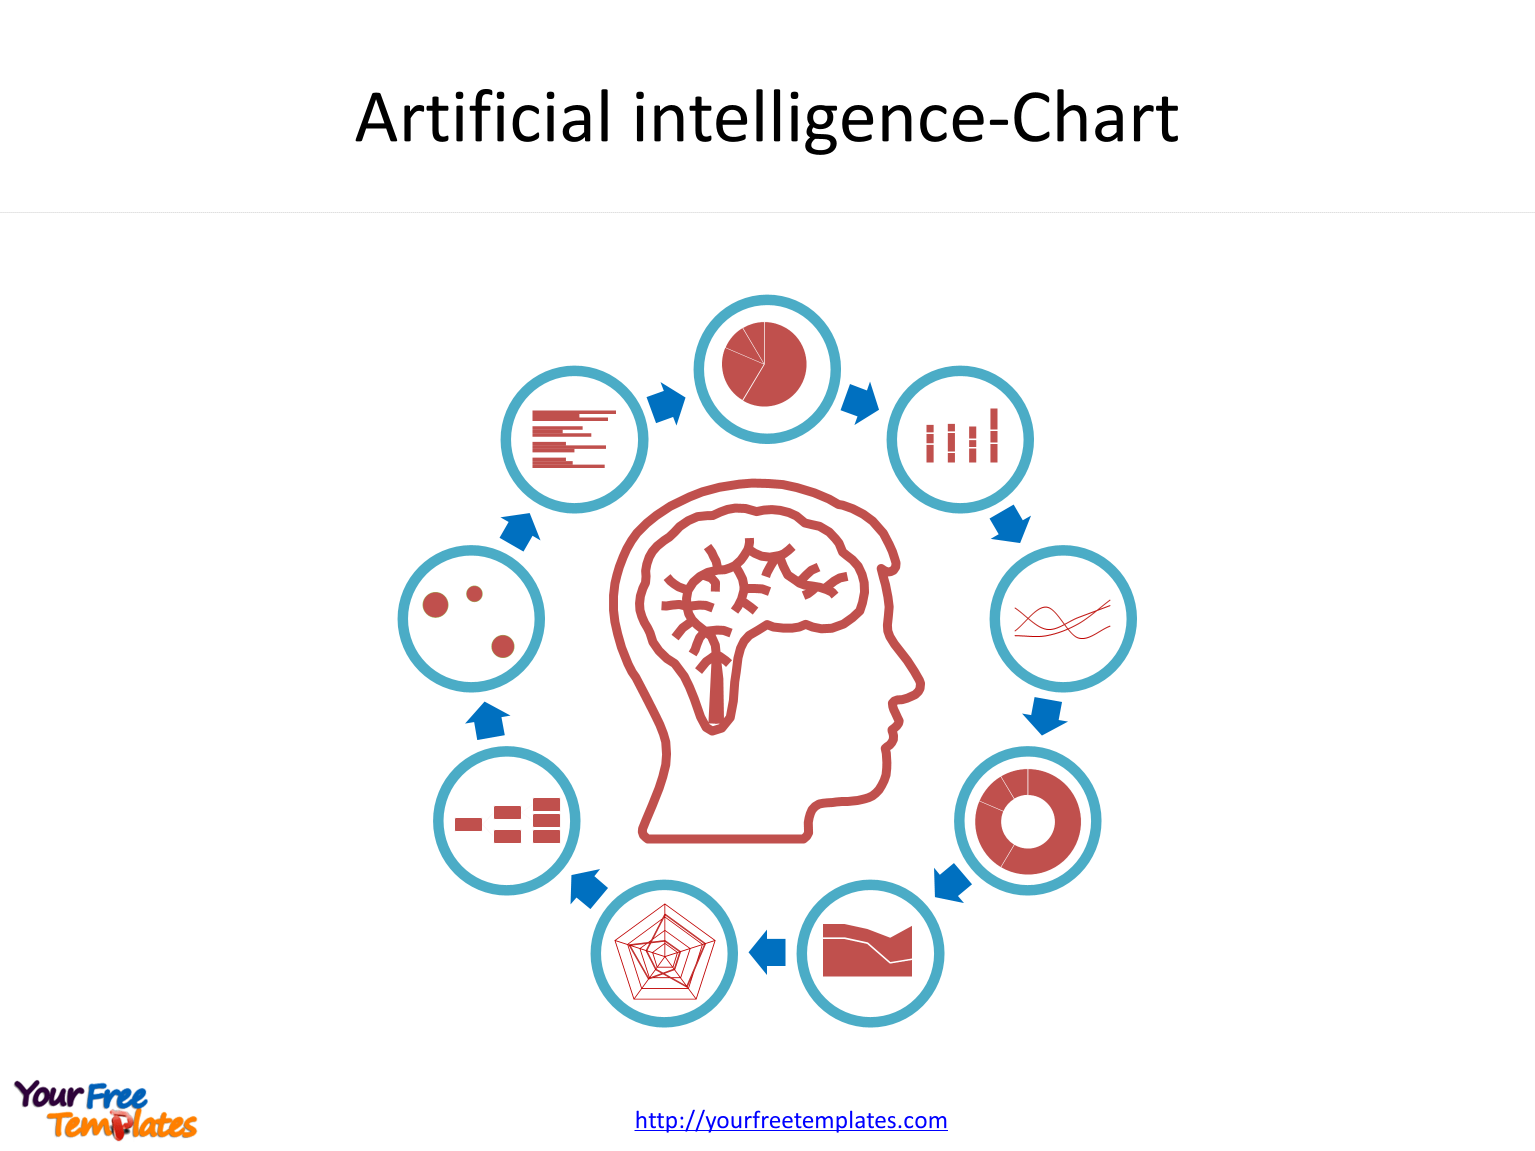 Artificial intelligence powerpoint templates diagram pinterest artificial intelligence powerpoint templates toneelgroepblik